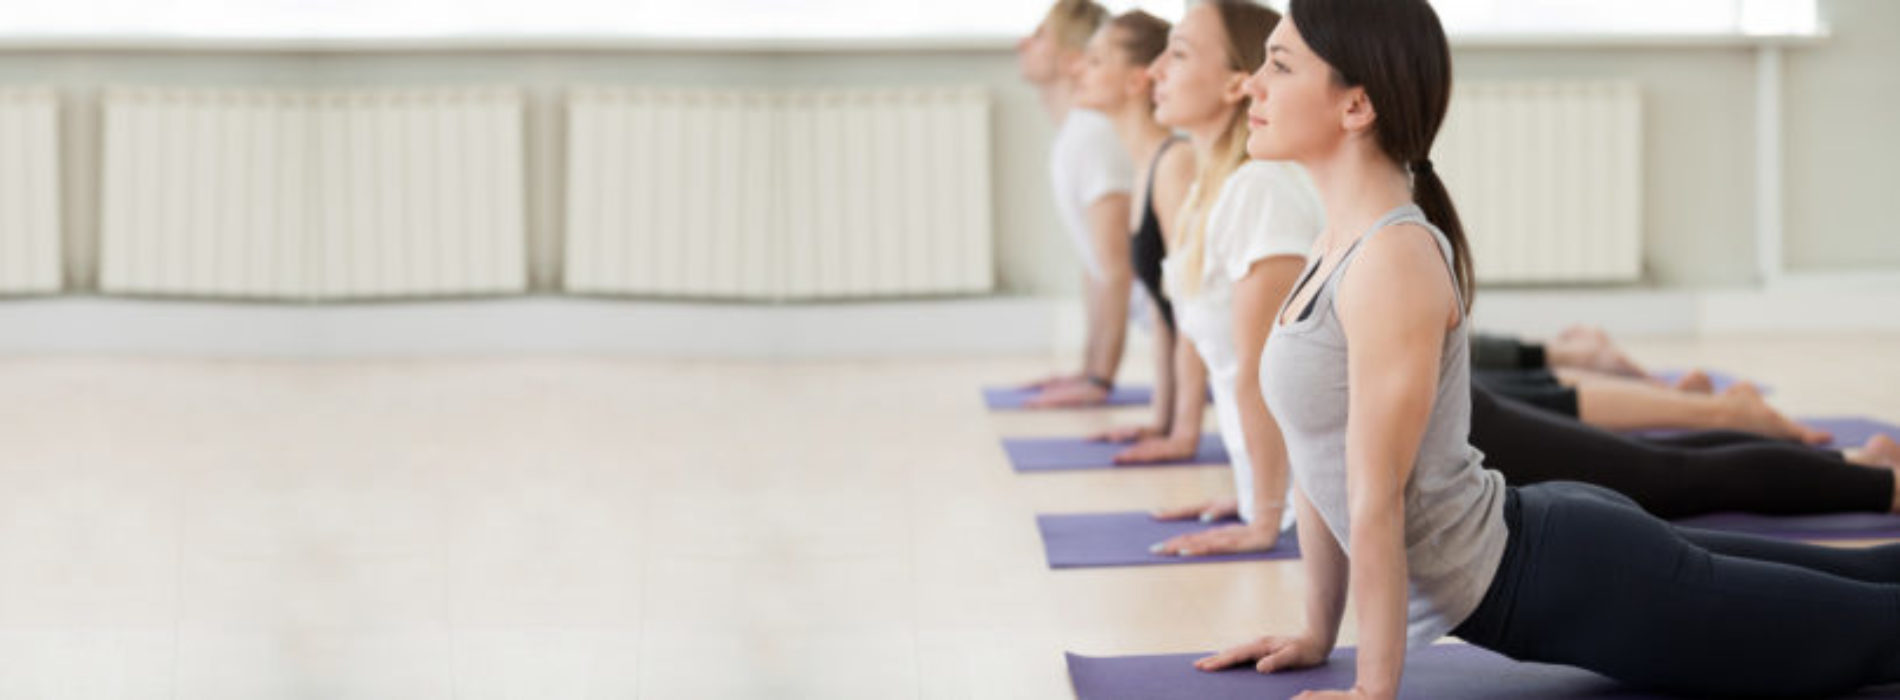 Dubai mums: relax and unwind with this yoga and spa treatment deal